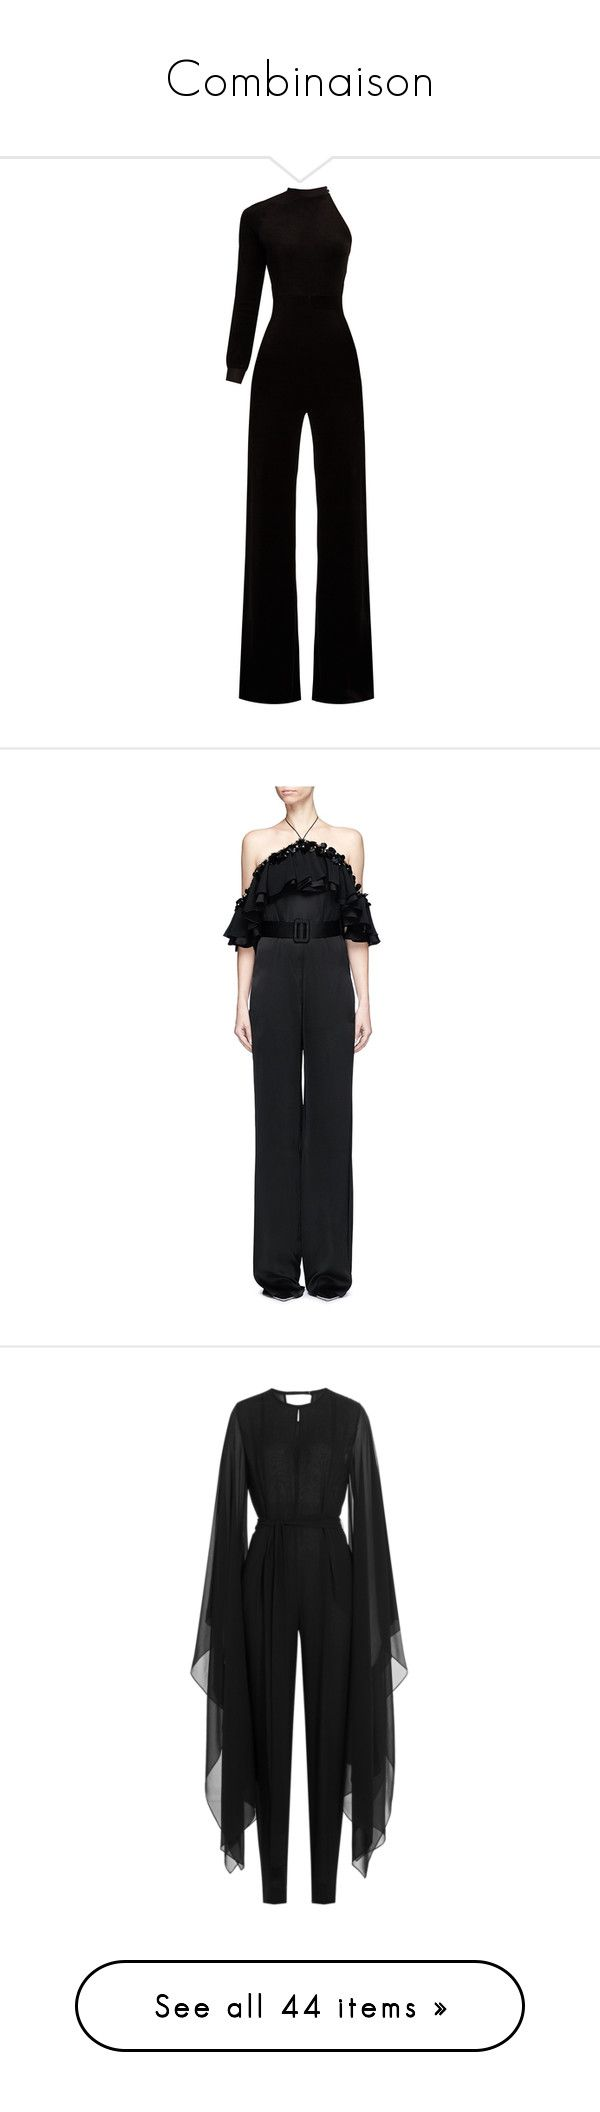 """Combinaison"" by doratemplam ❤ liked on Polyvore featuring jumpsuits, dresses, black, vetements, one sleeve jumpsuit, flare leg jumpsuit, high neck jumpsuit, jump suit, velour jumpsuit and satin halter top"